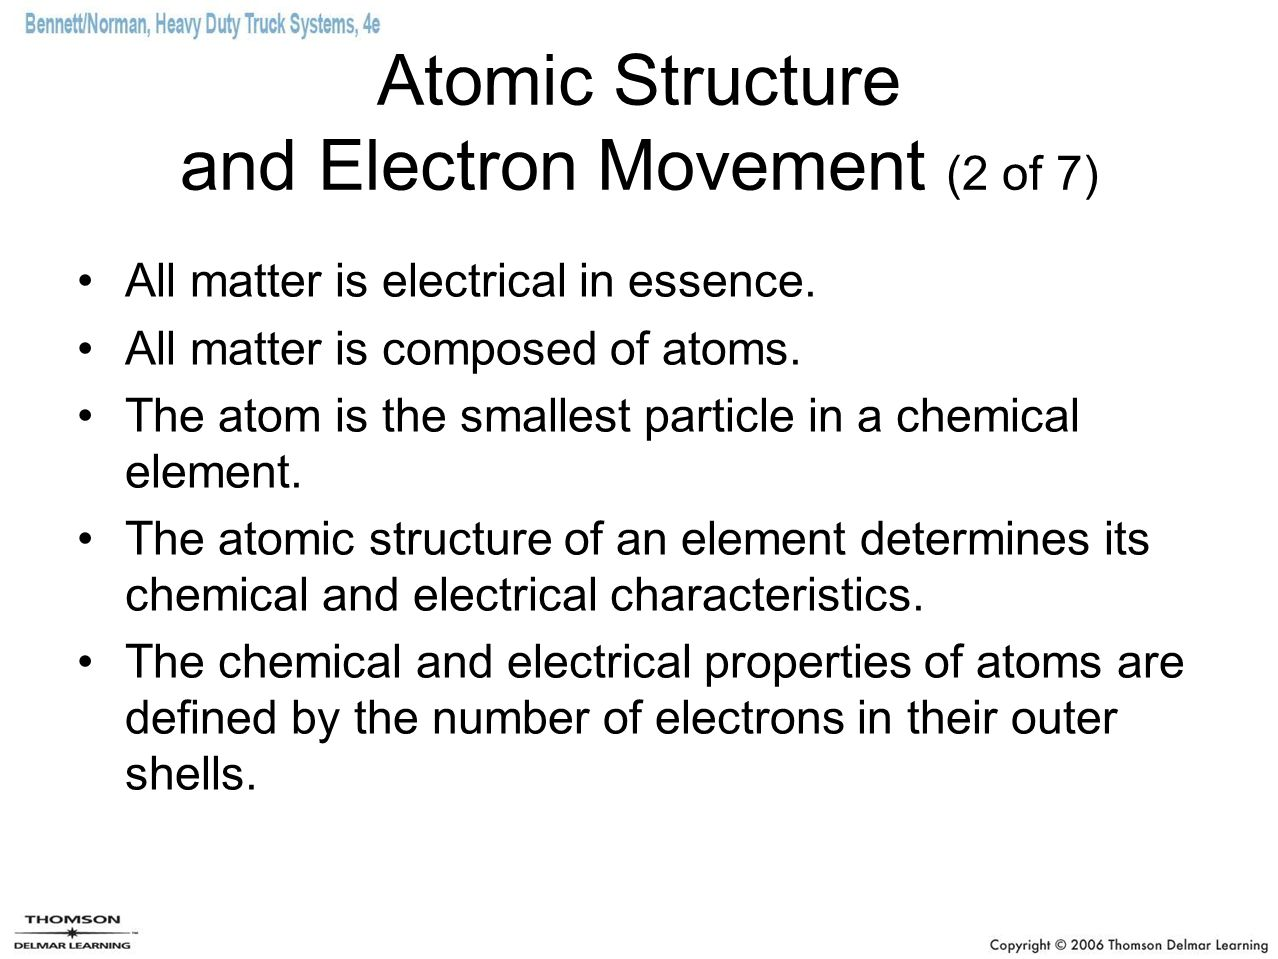 Atomic Structure and Electron Movement (2 of 7)